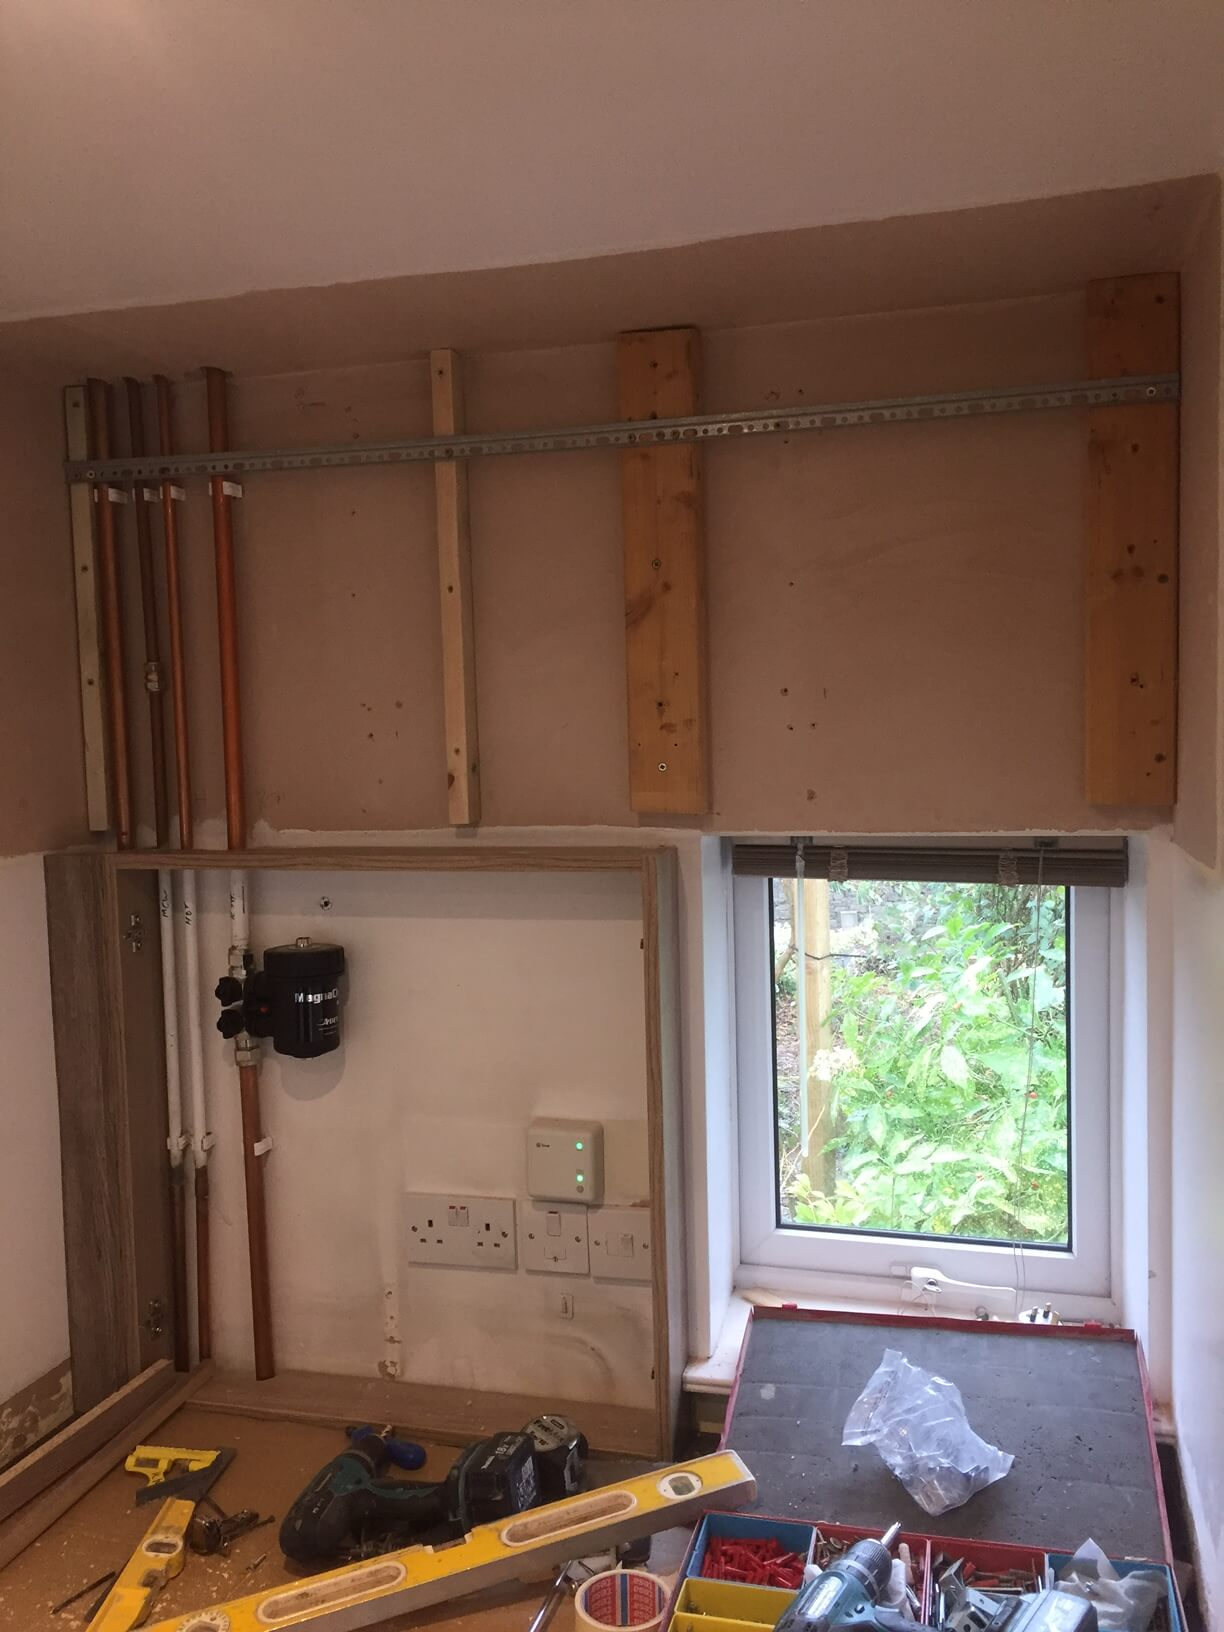 Preparation for wall units In the Utility